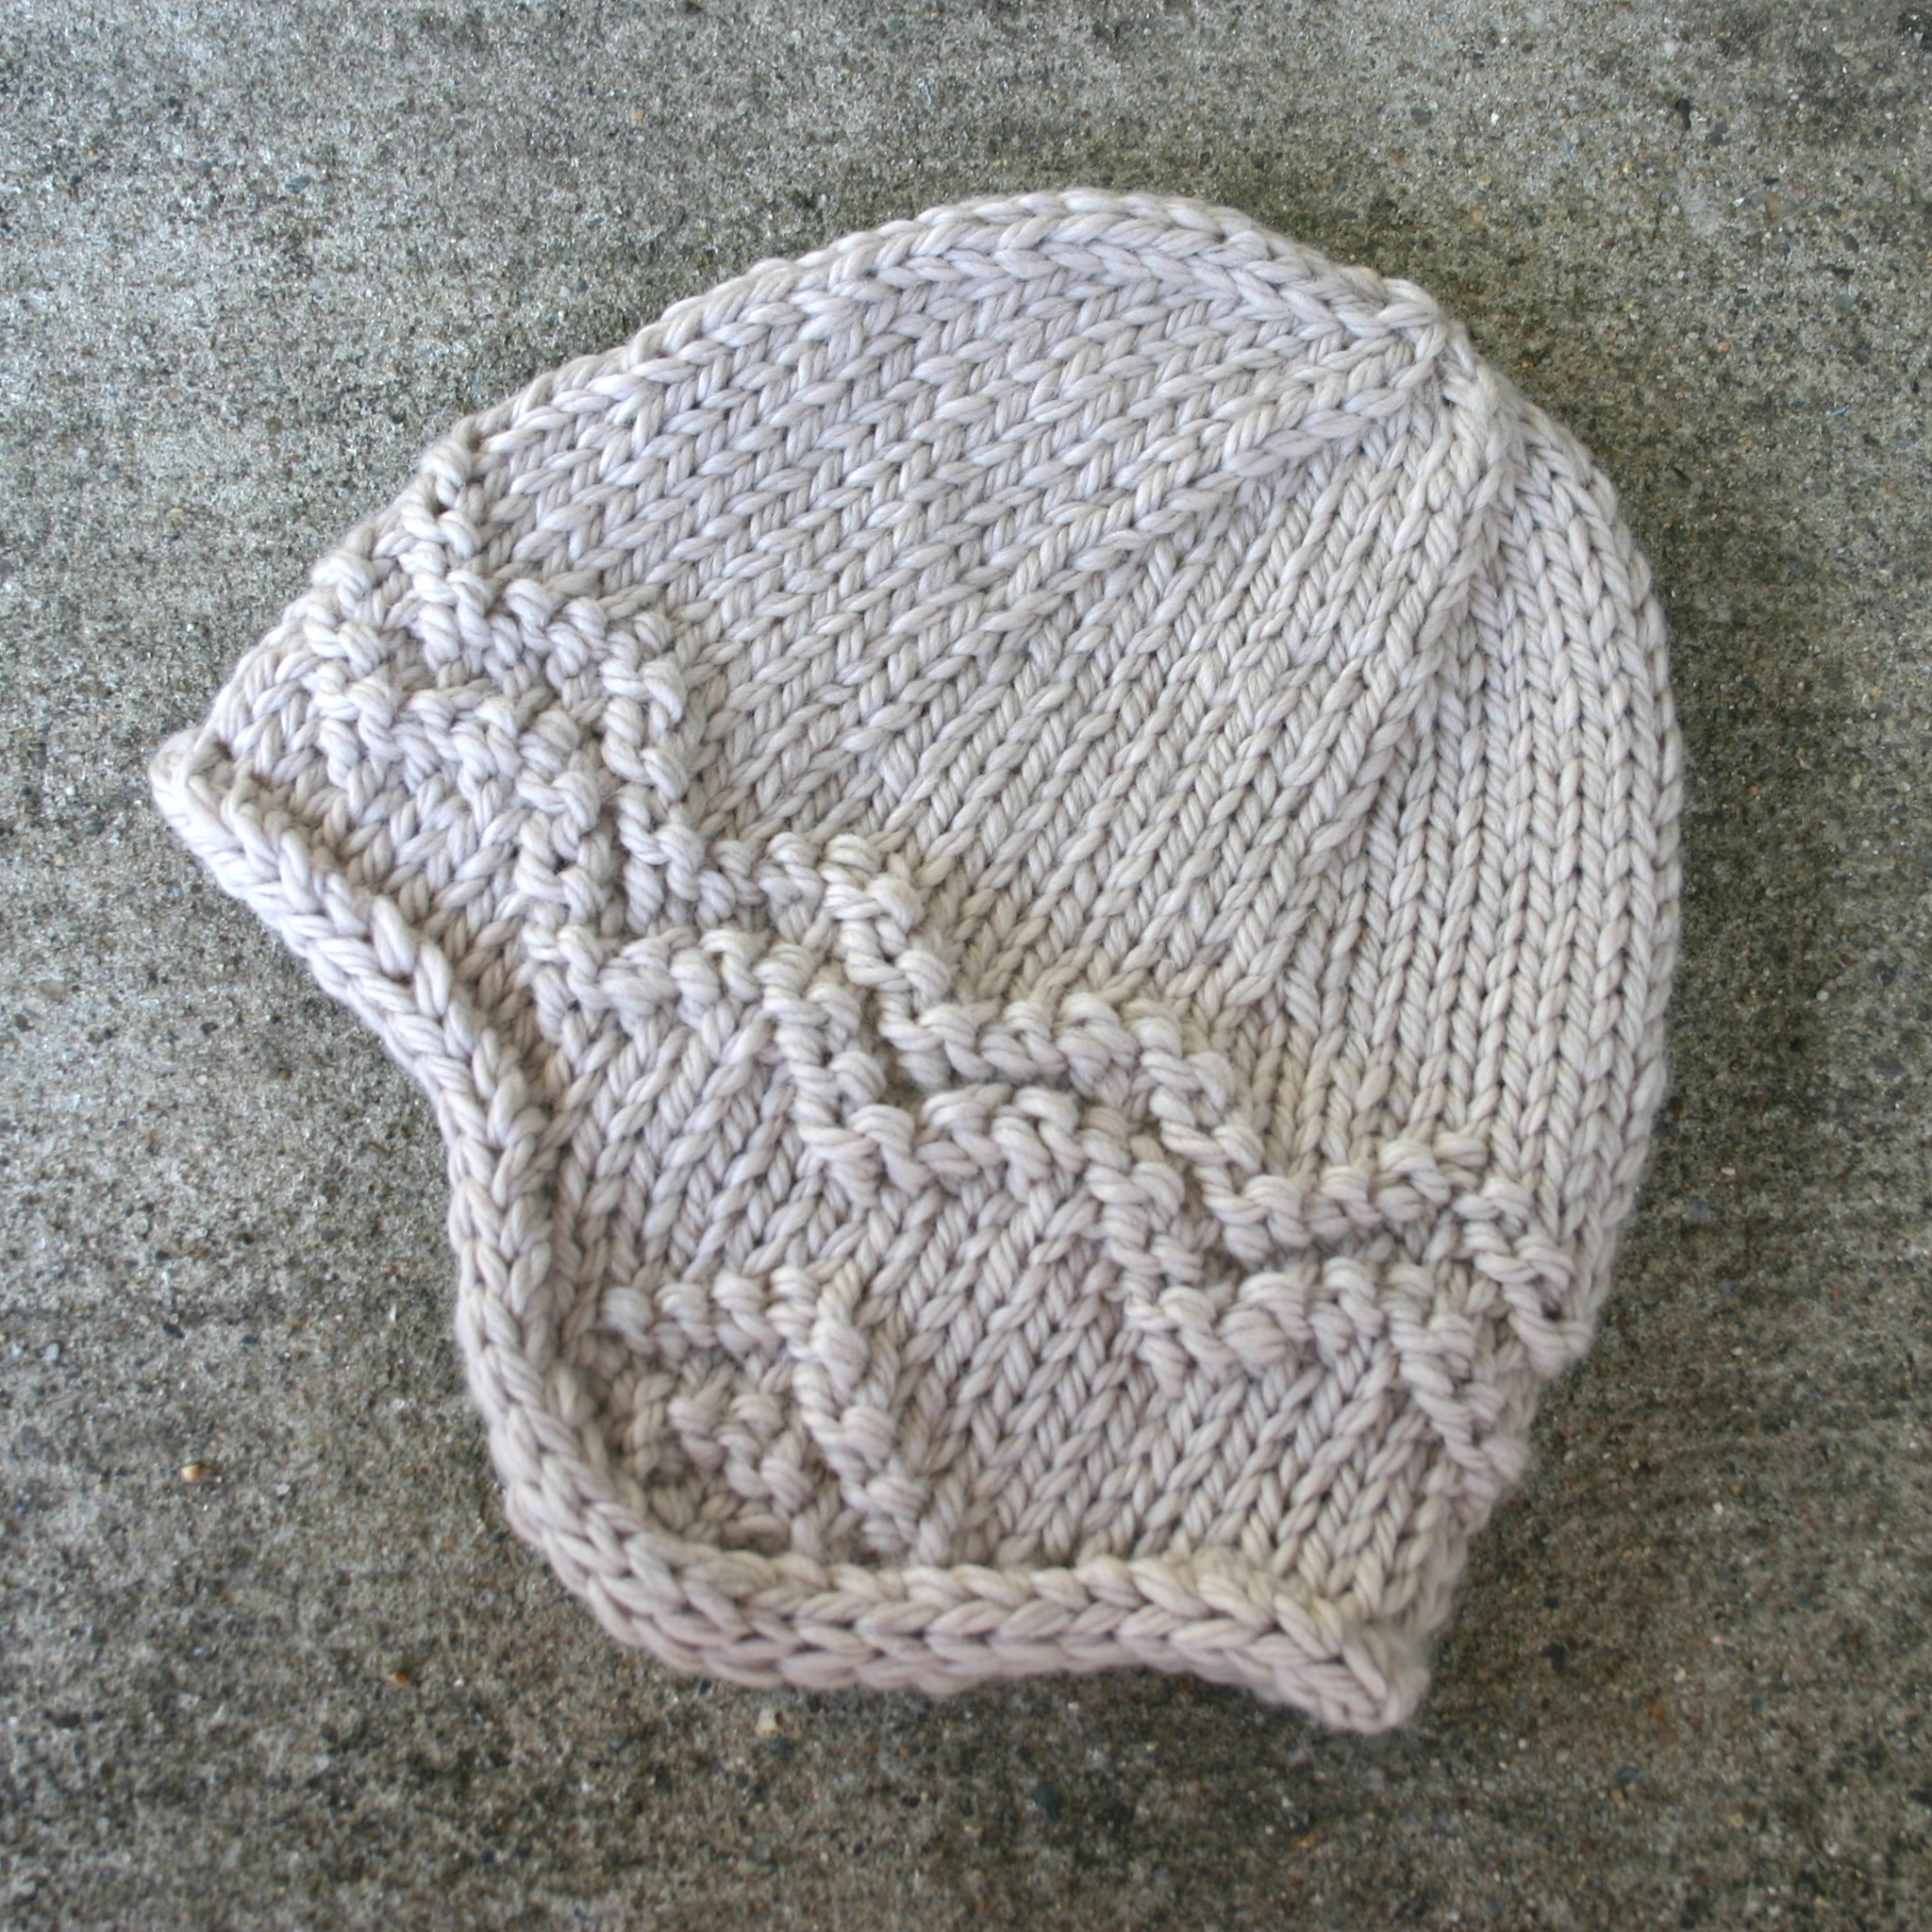 New Knitting Patterns : Free knitting pattern for an adults earflap hat, knit in bulky weight ...